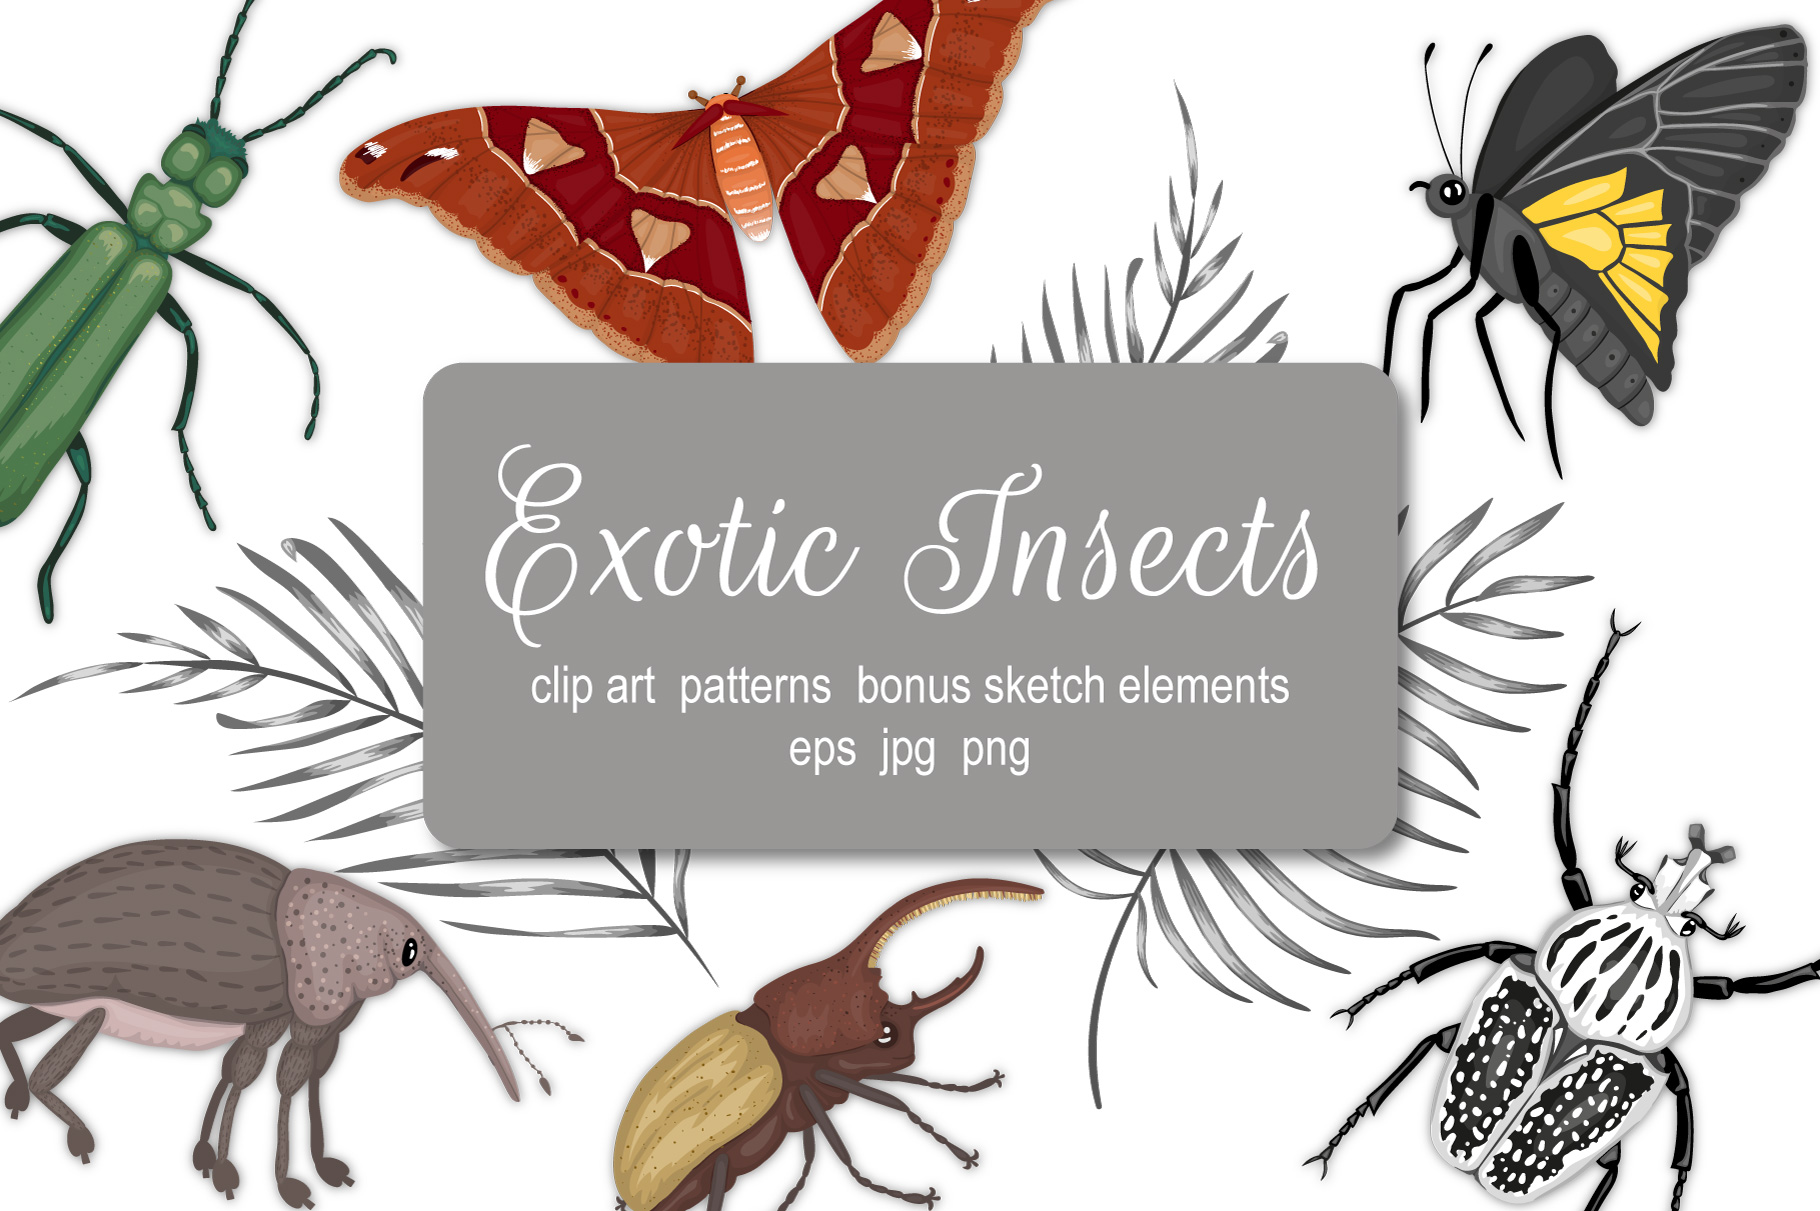 Download Free Exotic Insects Graphic By Lexiclaus Creative Fabrica for Cricut Explore, Silhouette and other cutting machines.